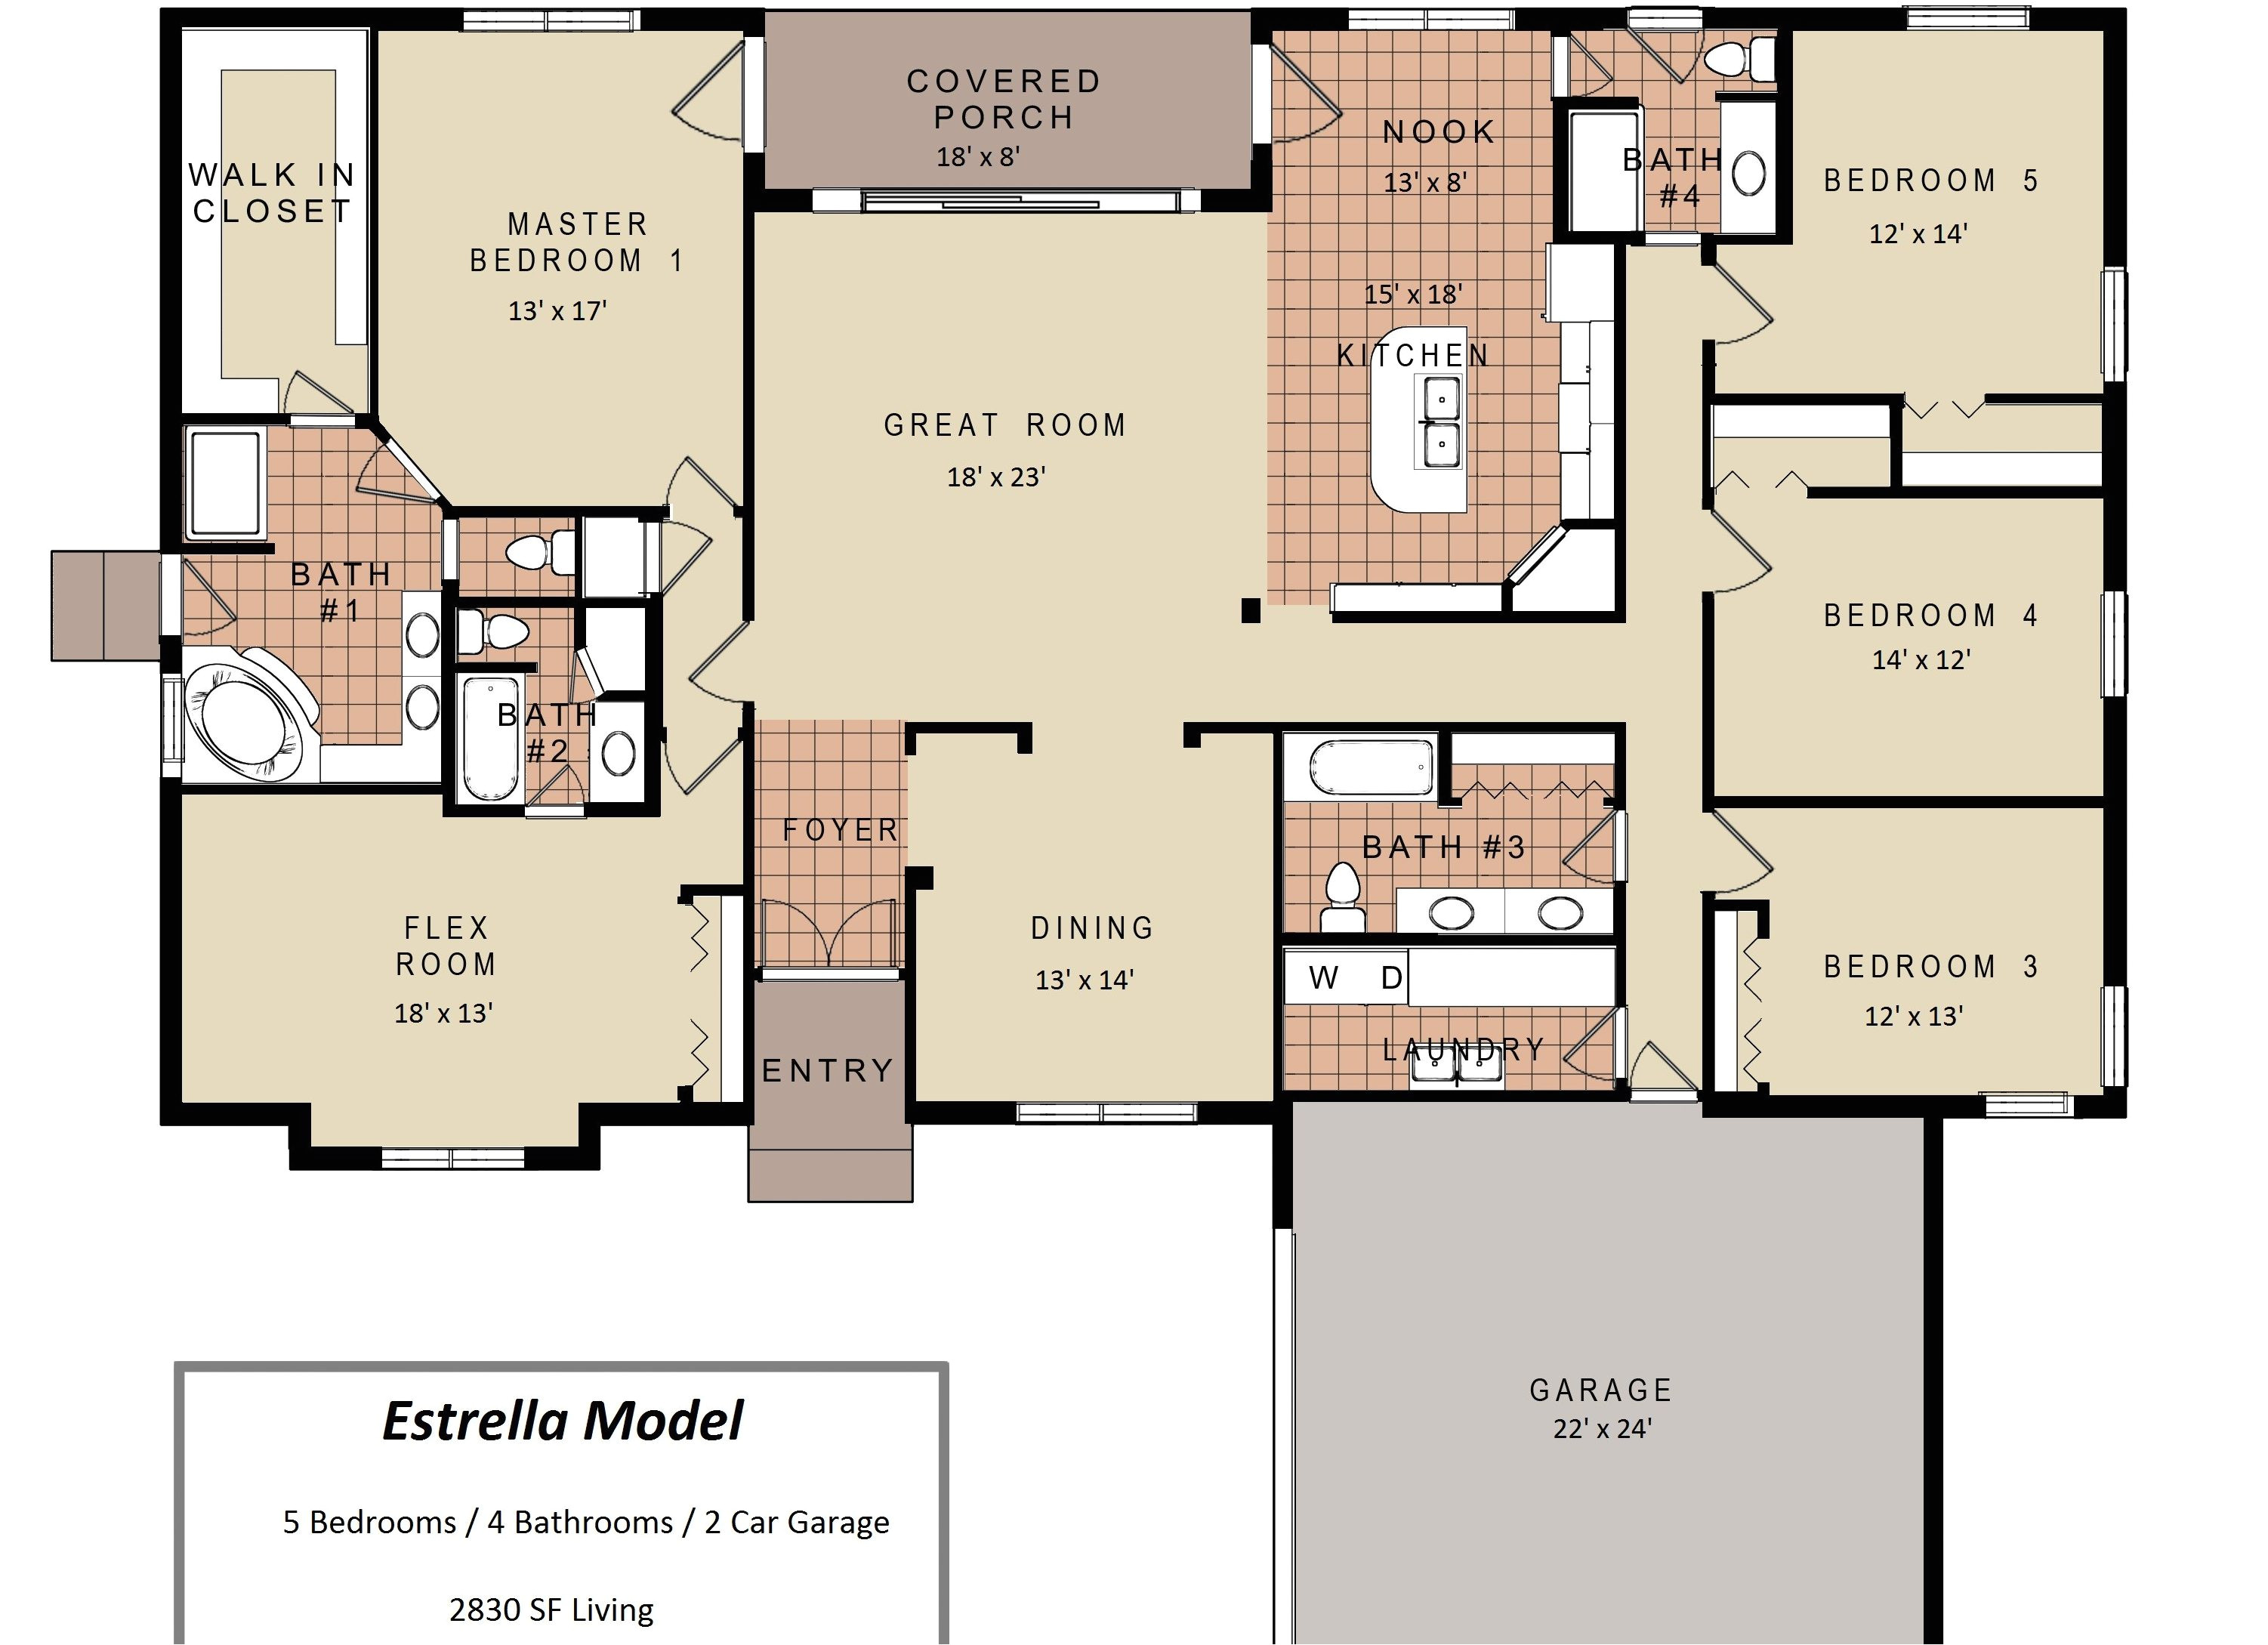 3 bedroom bath house floor plans